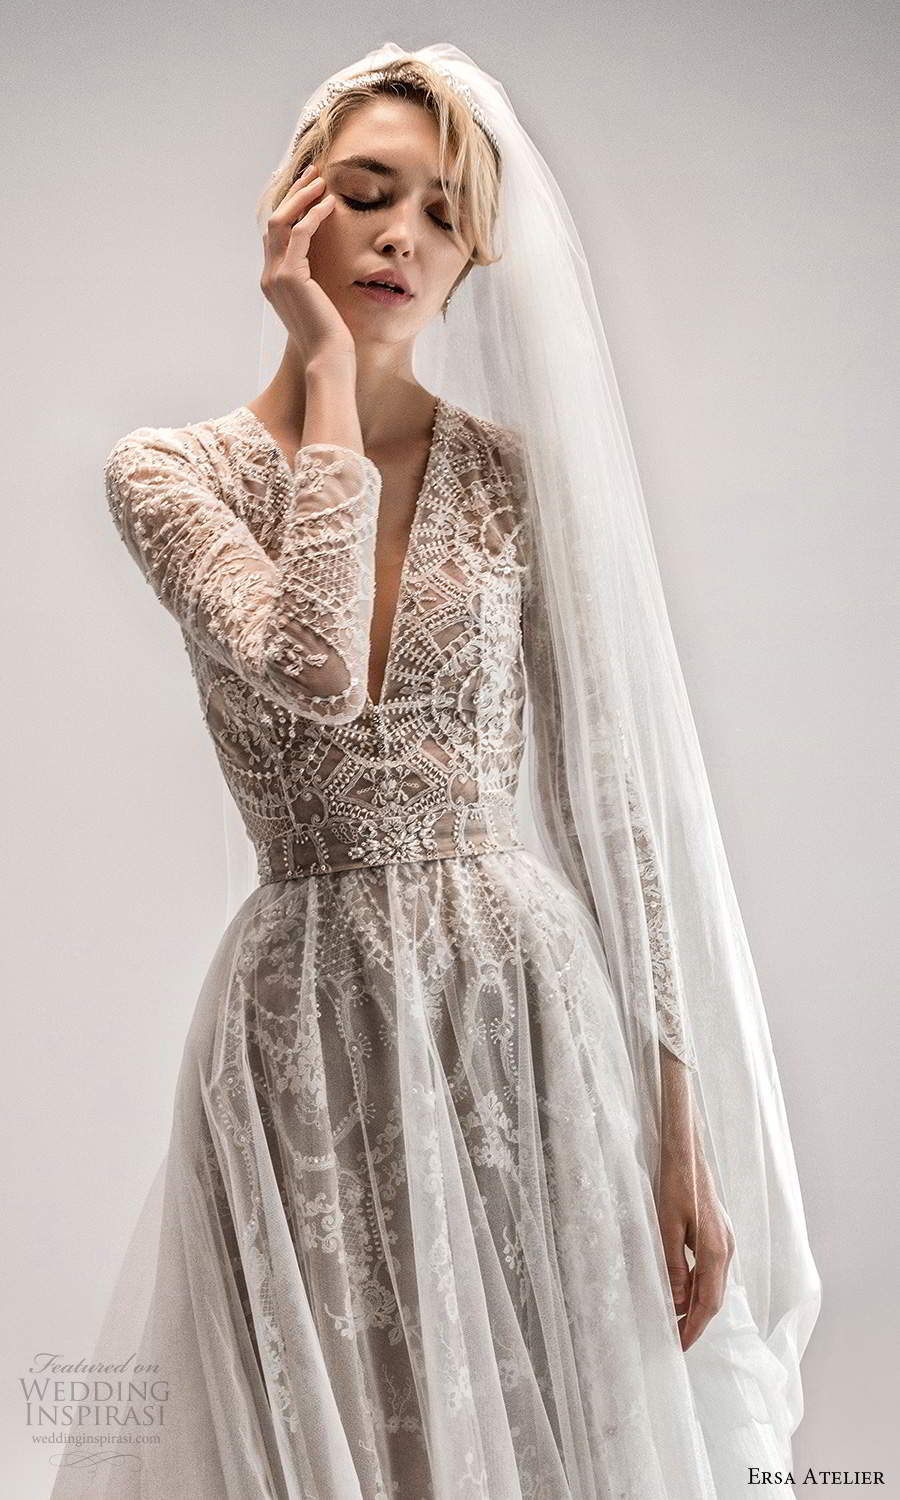 ersa atelier spring 2021 bridal long sleeves plunging v neckline fully embellished a line wedding dress chapel train ball gown overskirt (9) zv